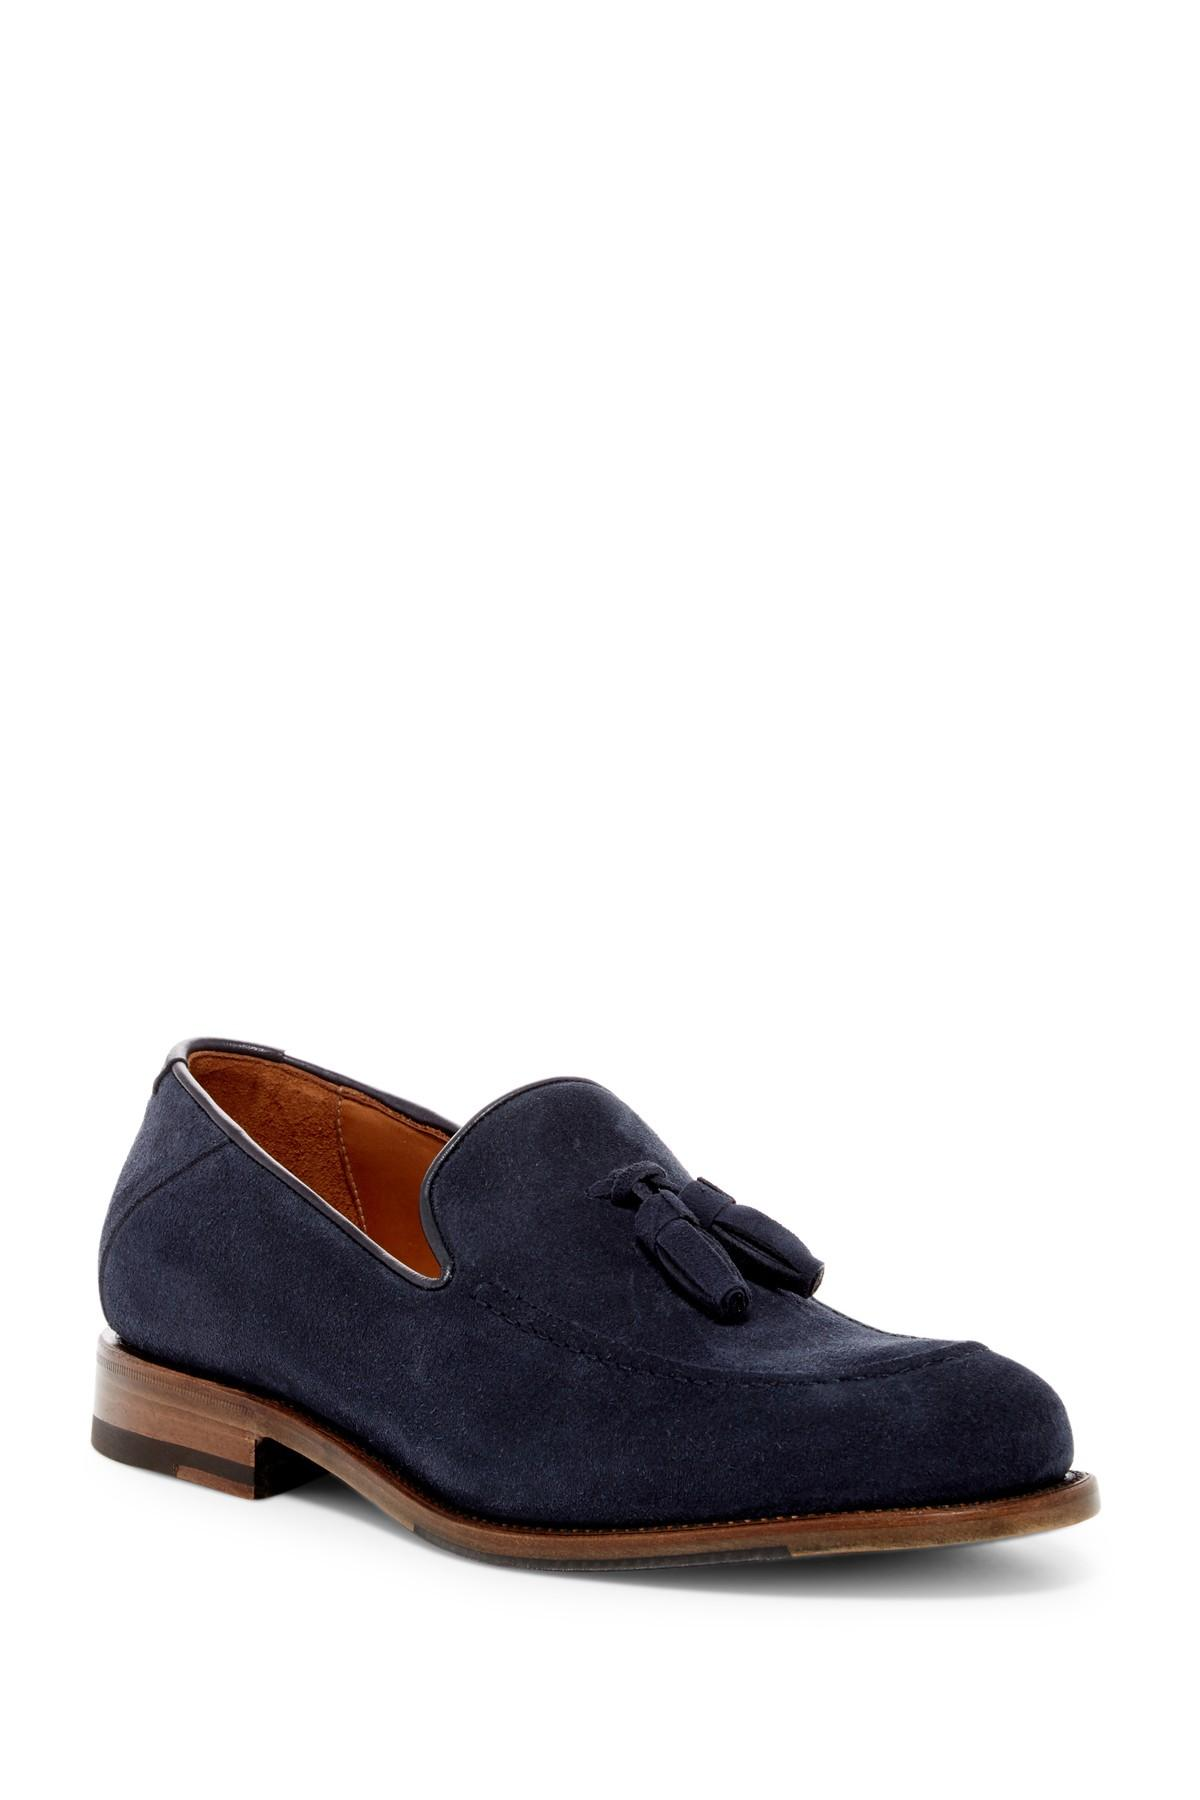 Aquatalia Falco Weatherproof Suede Loafer In Blue For Men